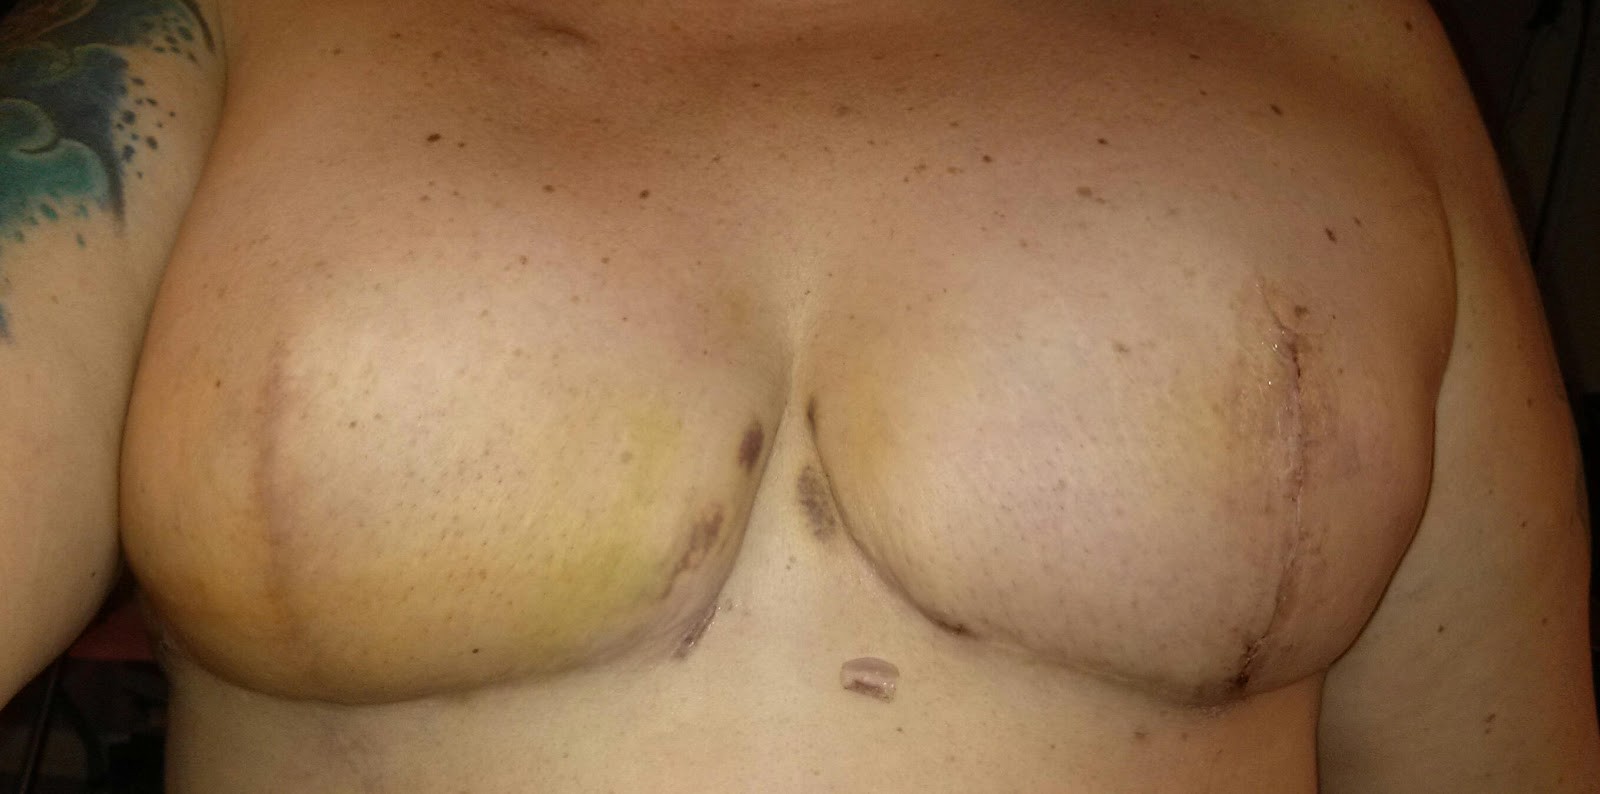 Swelling Boobs 55